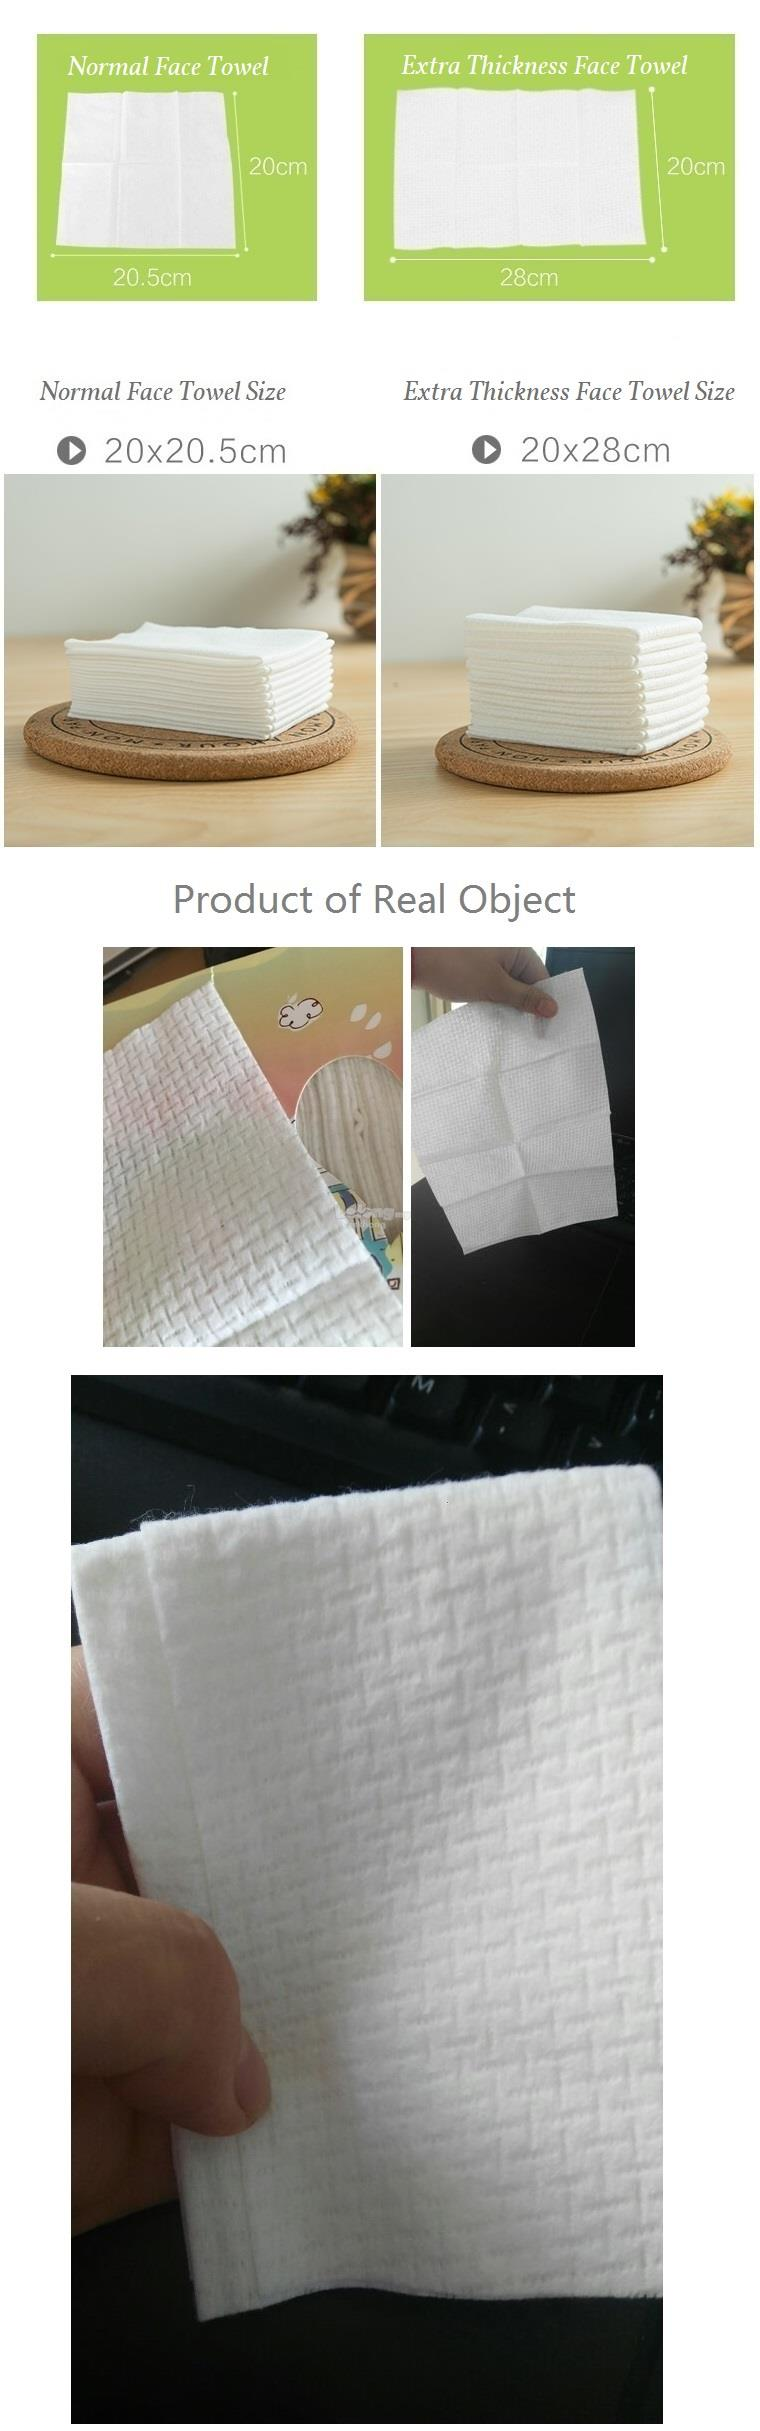 travel necessities outdoor disposable pure cotton face towel baby